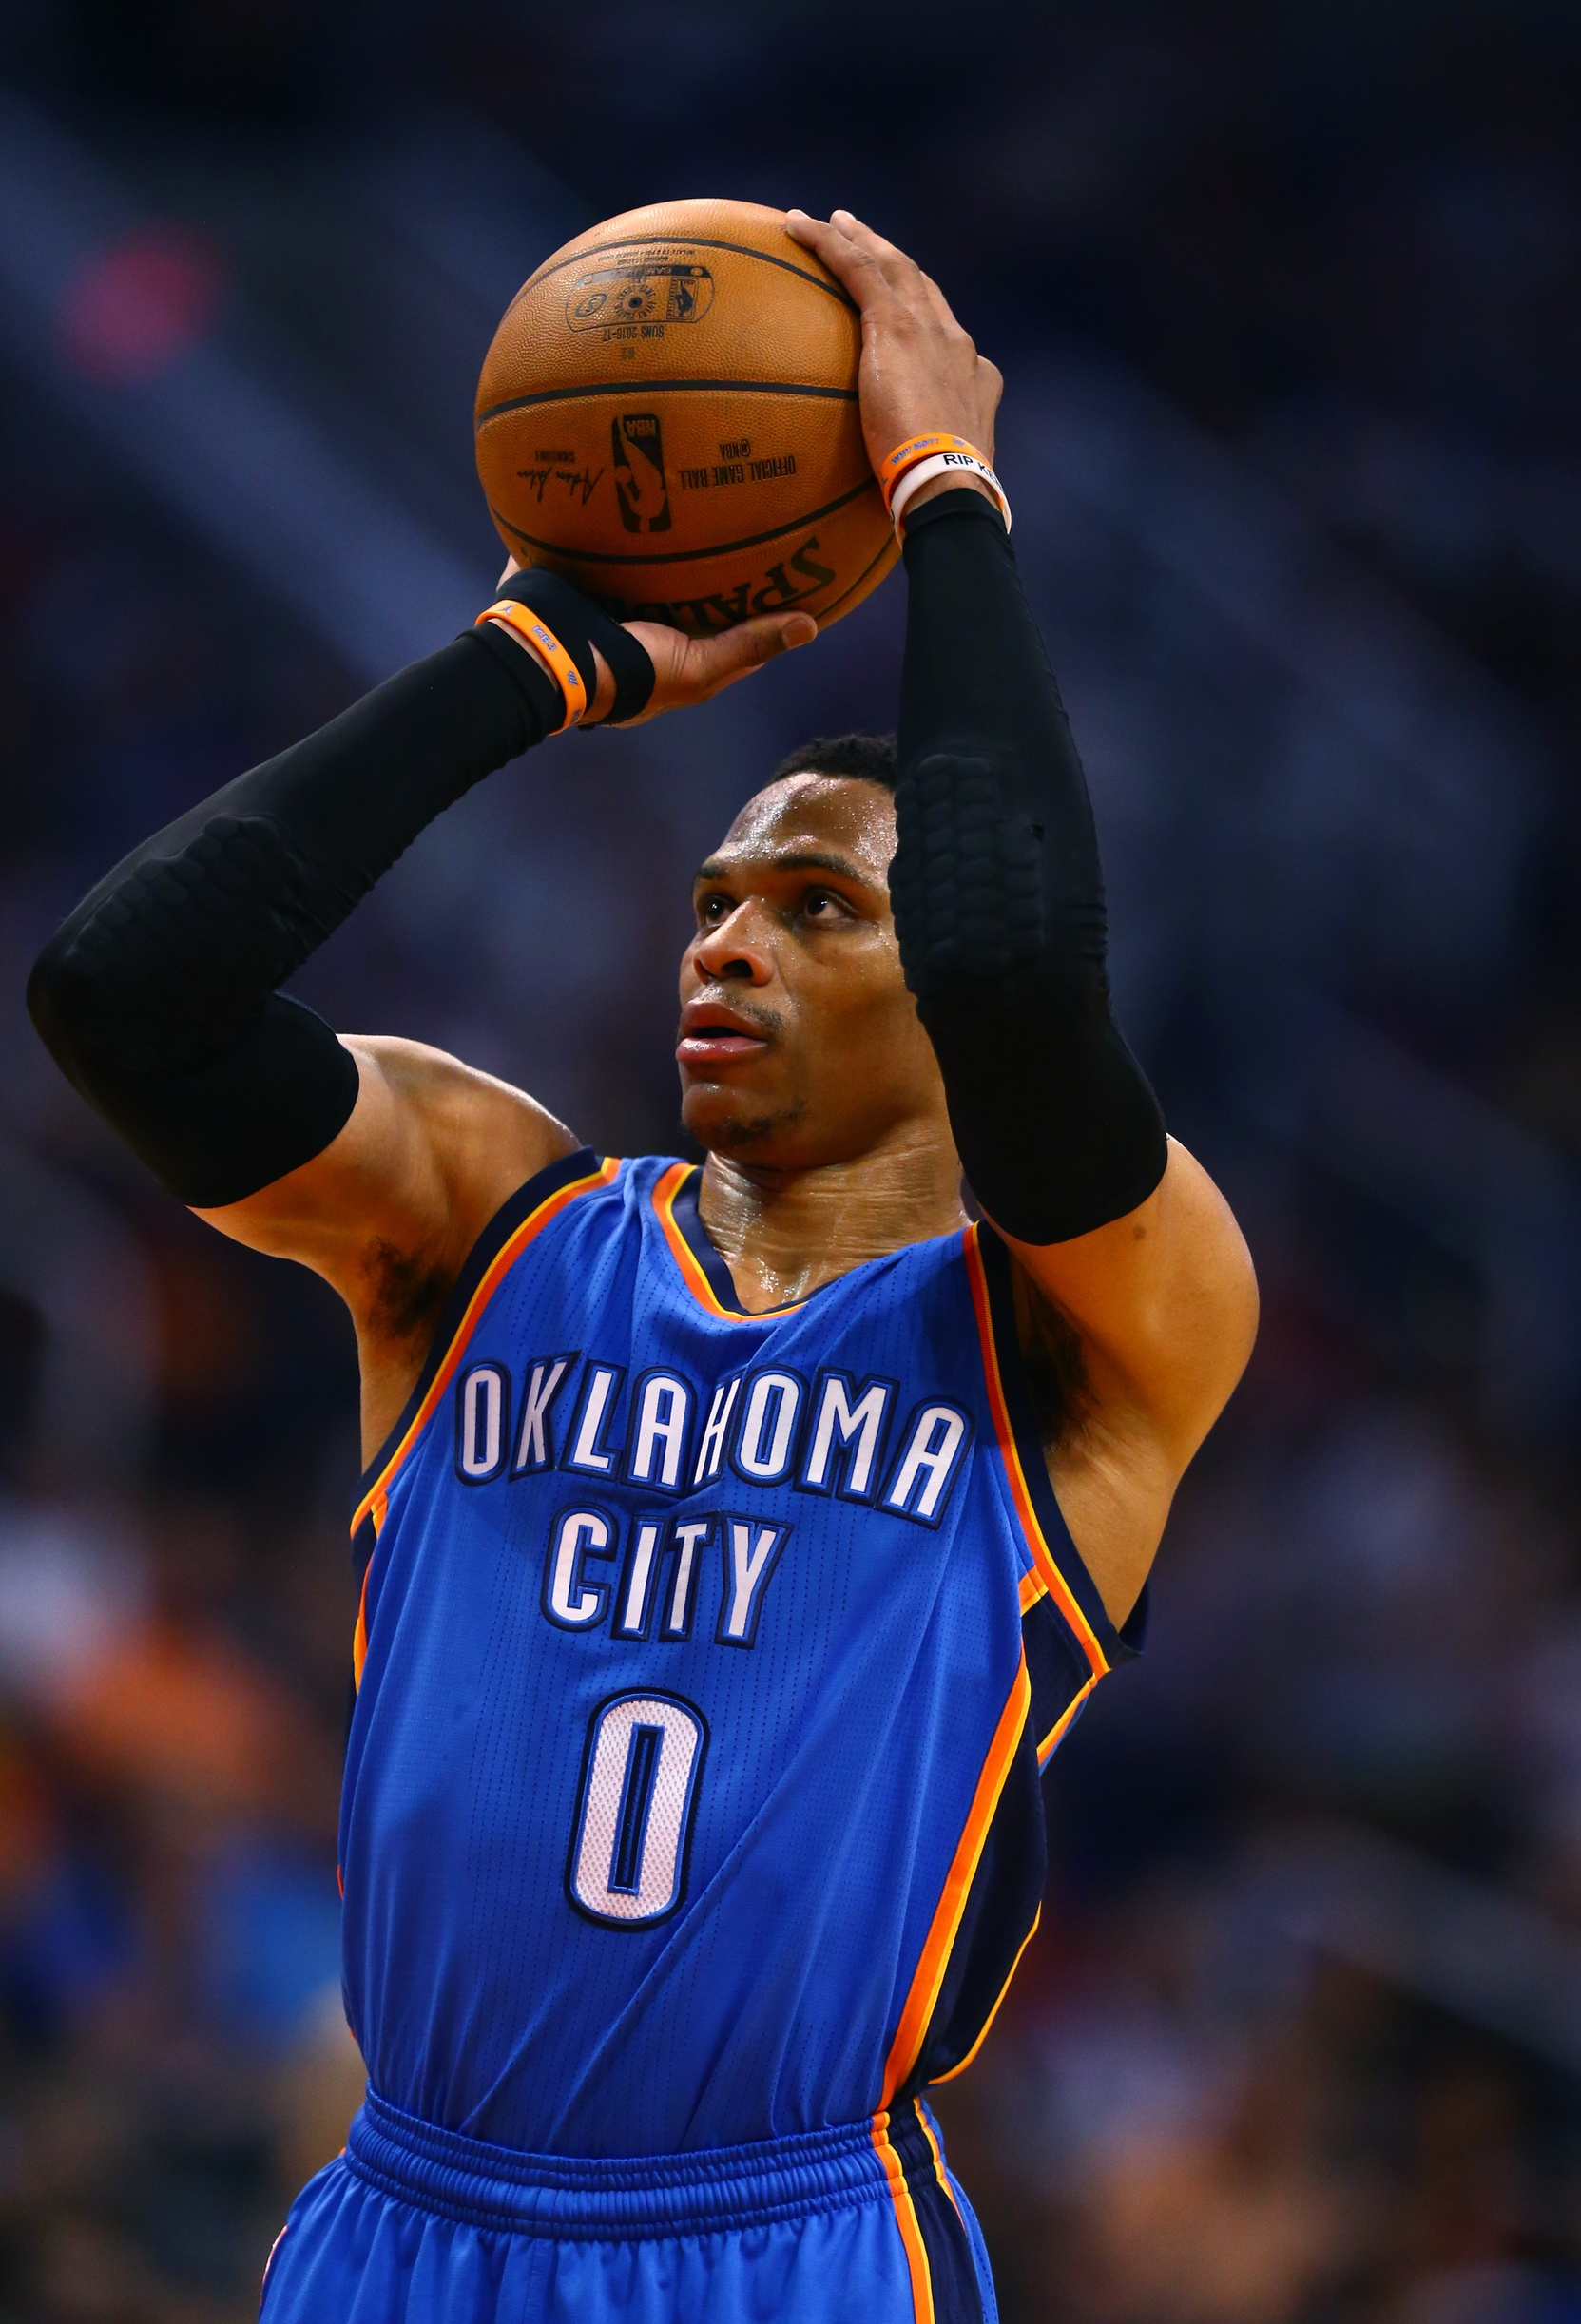 b78443cd563 Russell Westbrook incident exposes ongoing racism – Workers World